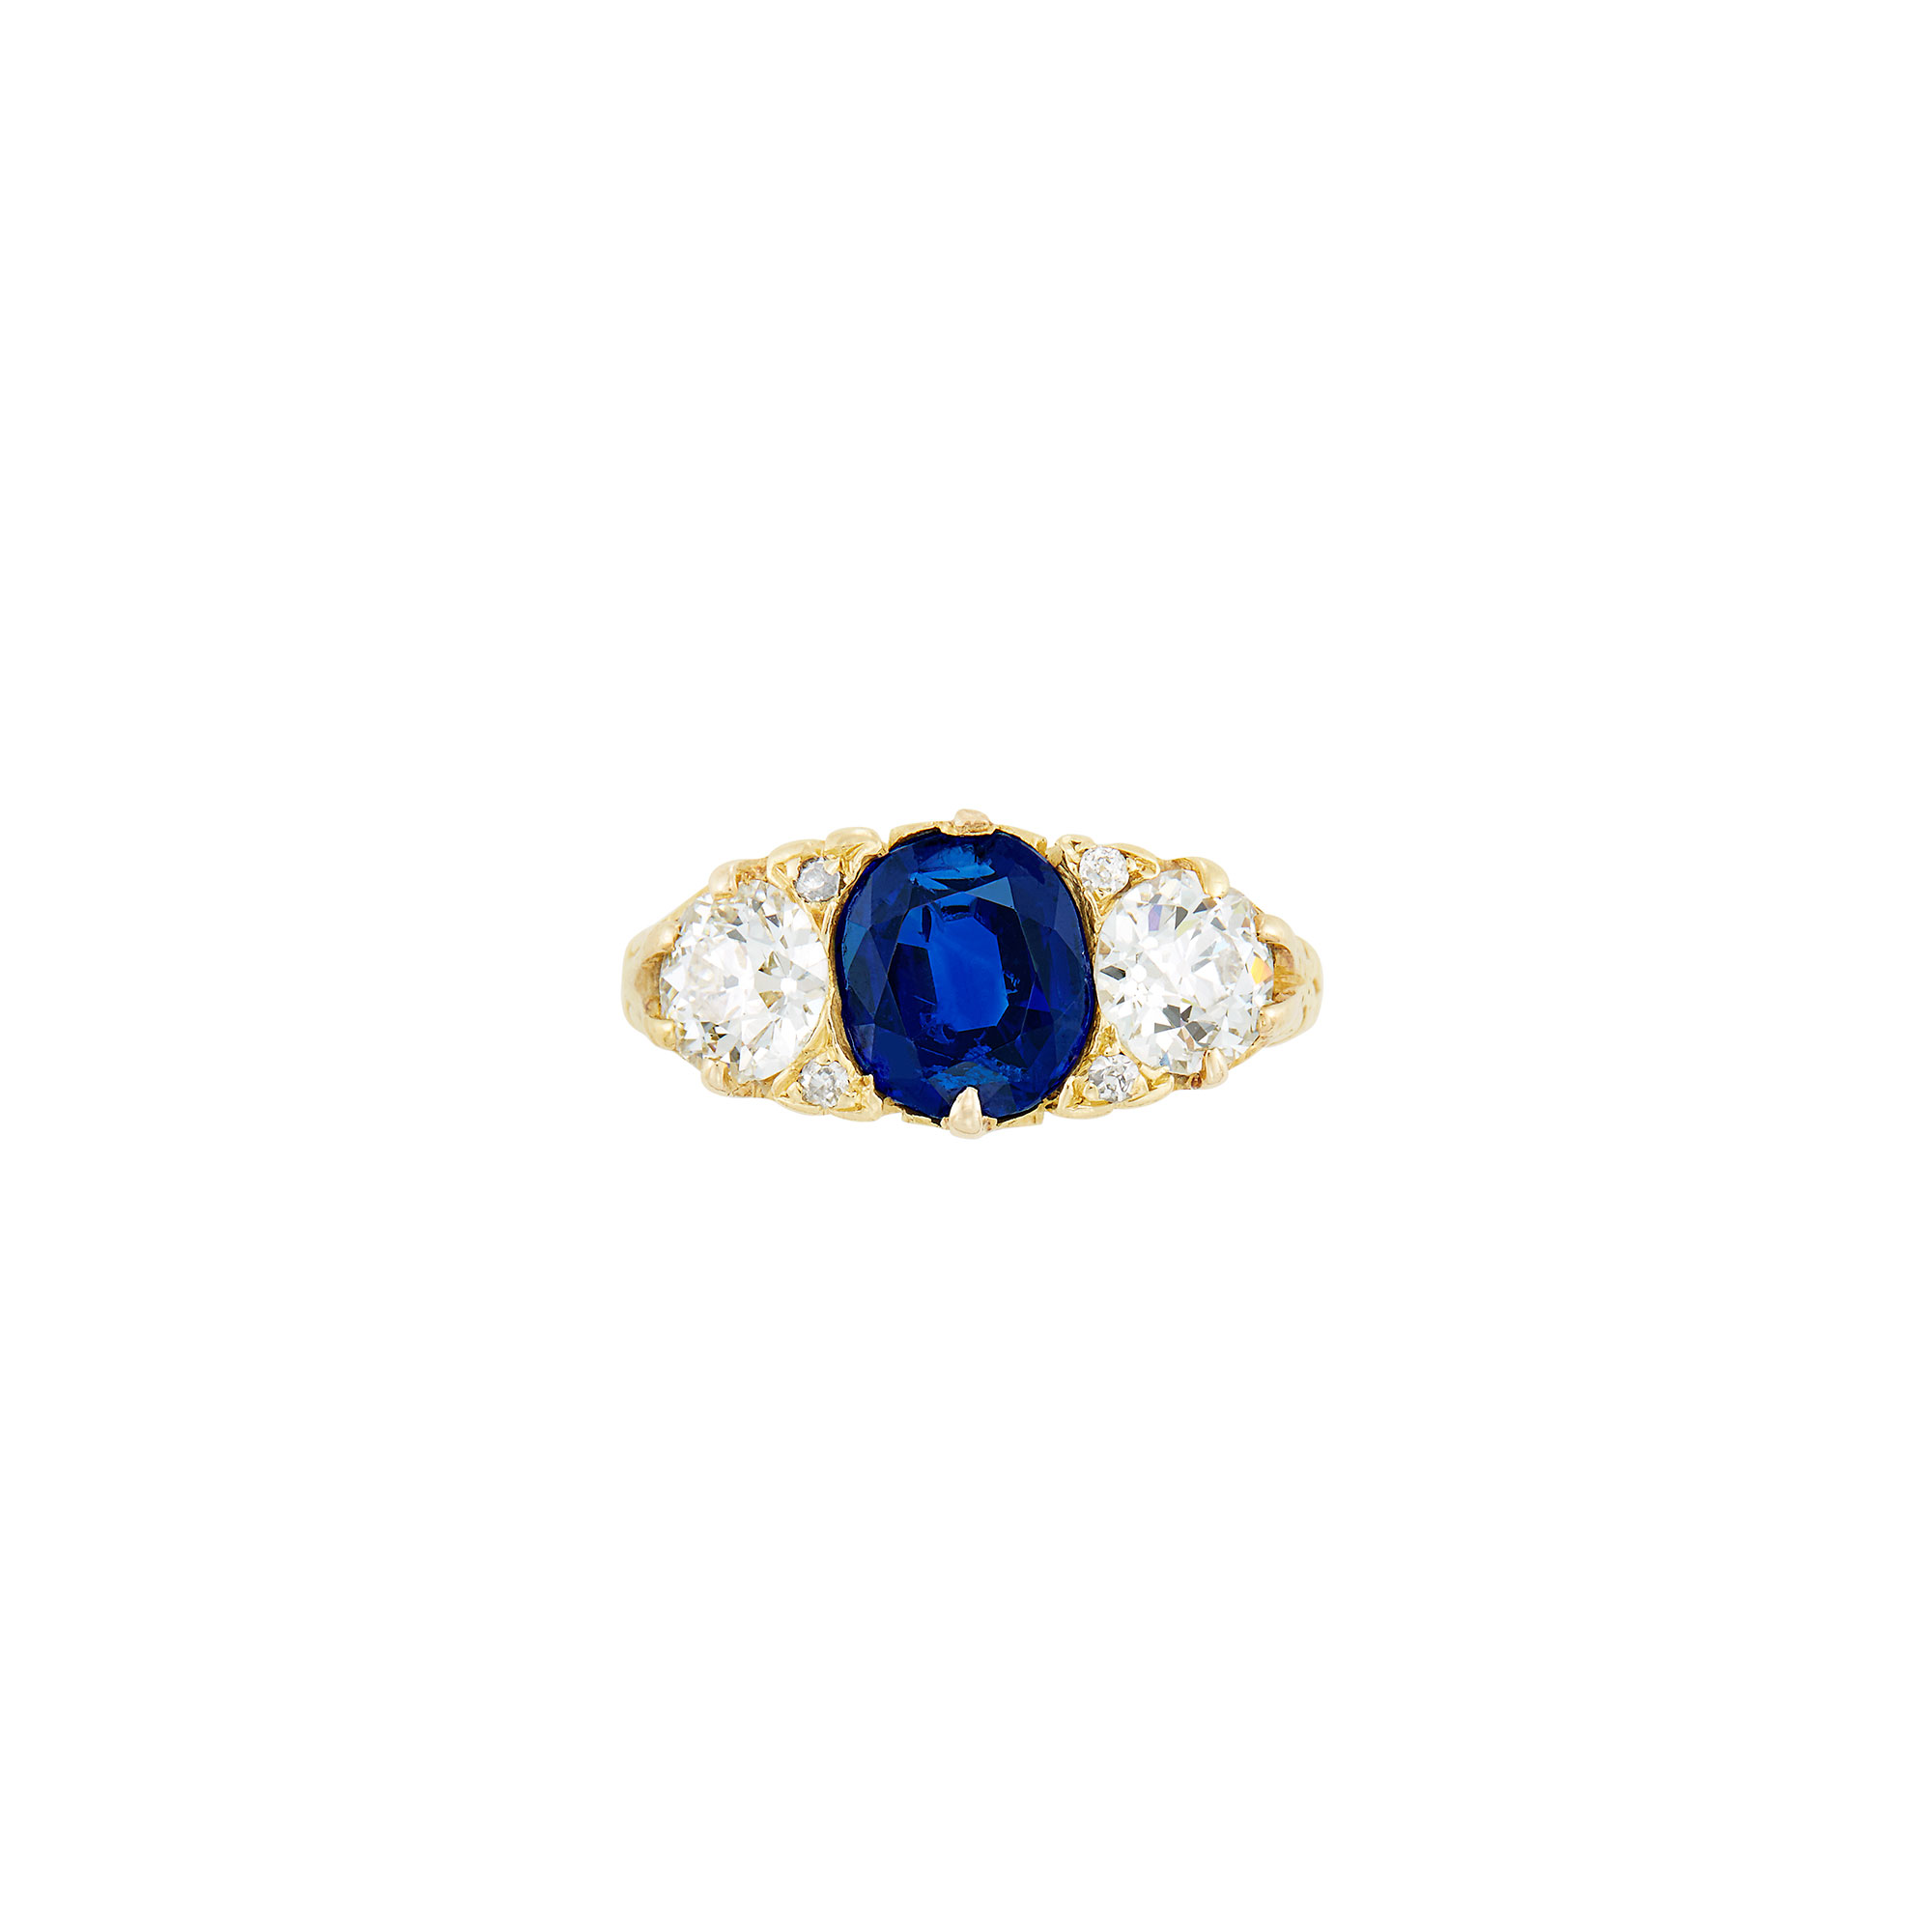 Lot image - Antique Gold, Sapphire and Diamond Ring